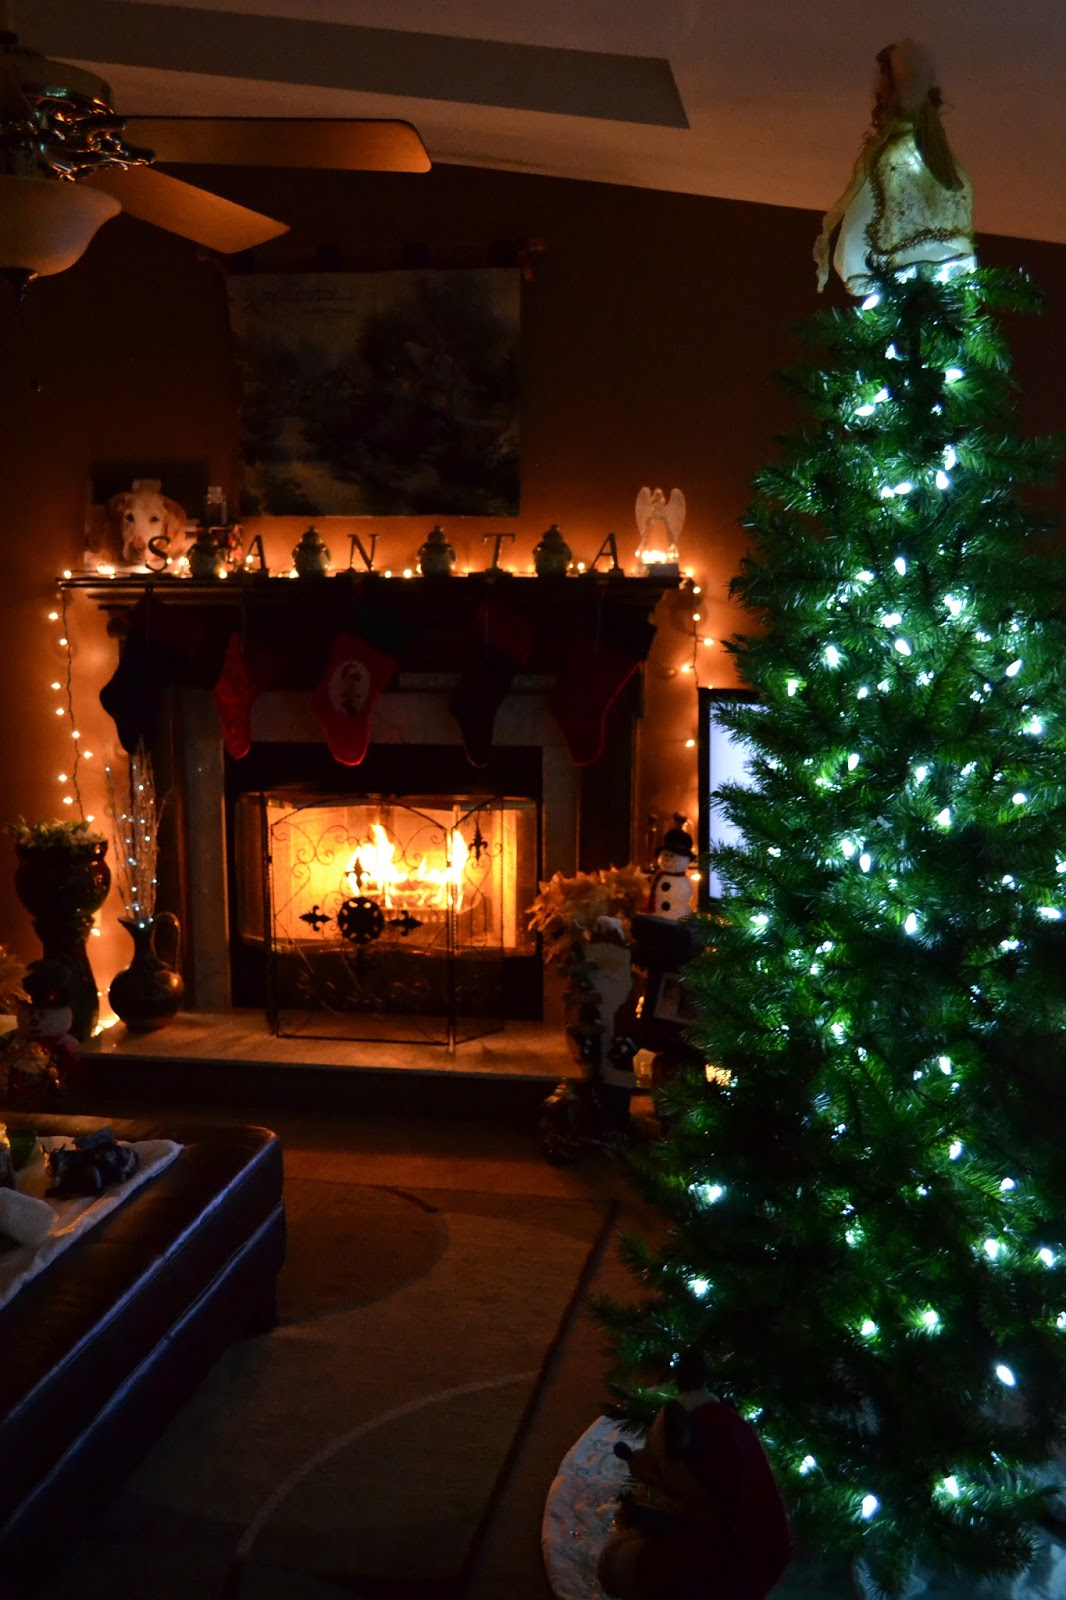 aside from my bedroom one of my favorite places to spend my nights is my living room i love lighting a fire in the fireplace and curling up with a big - Simply Having A Wonderful Christmas Time